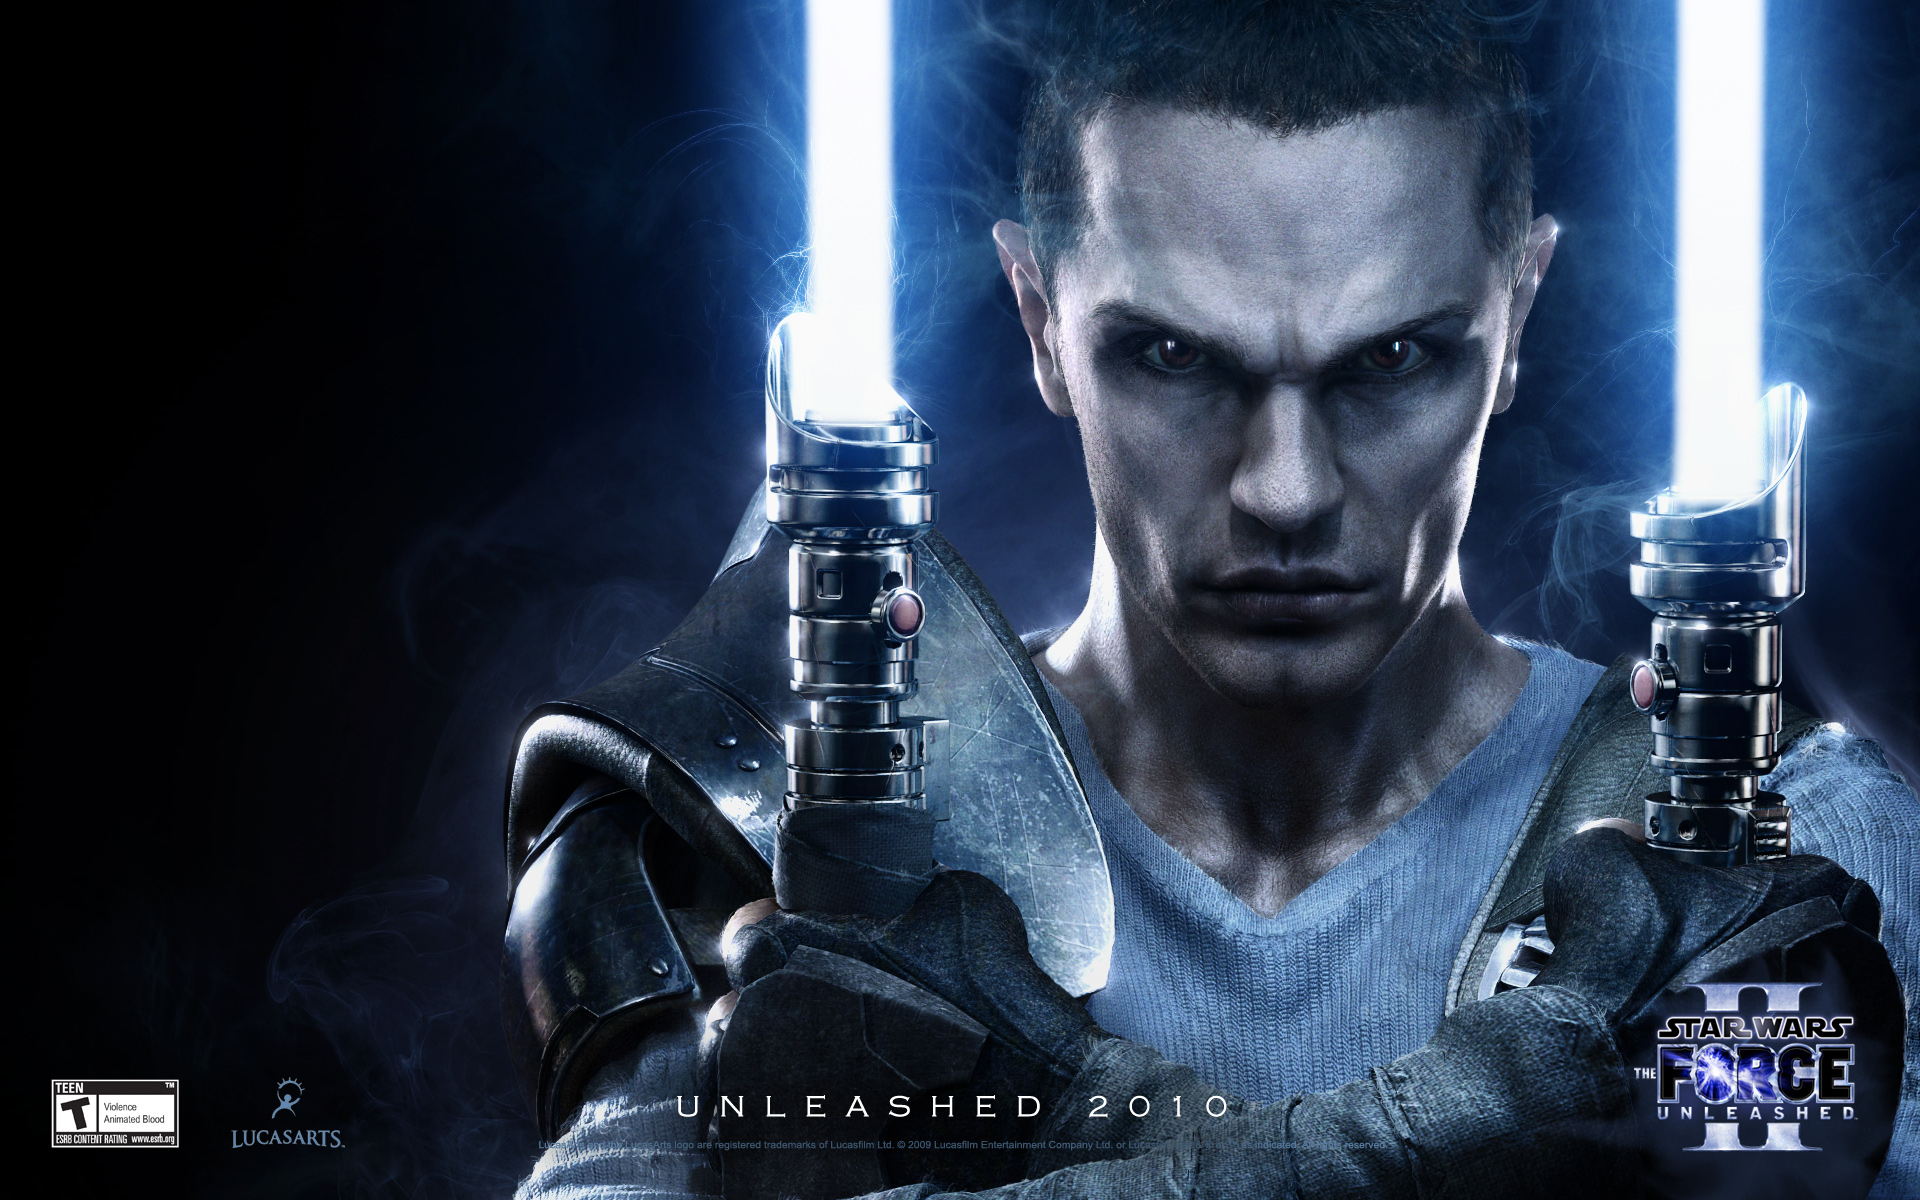 Star wars the force unleashed 2 wallpaper close up 1920x1200